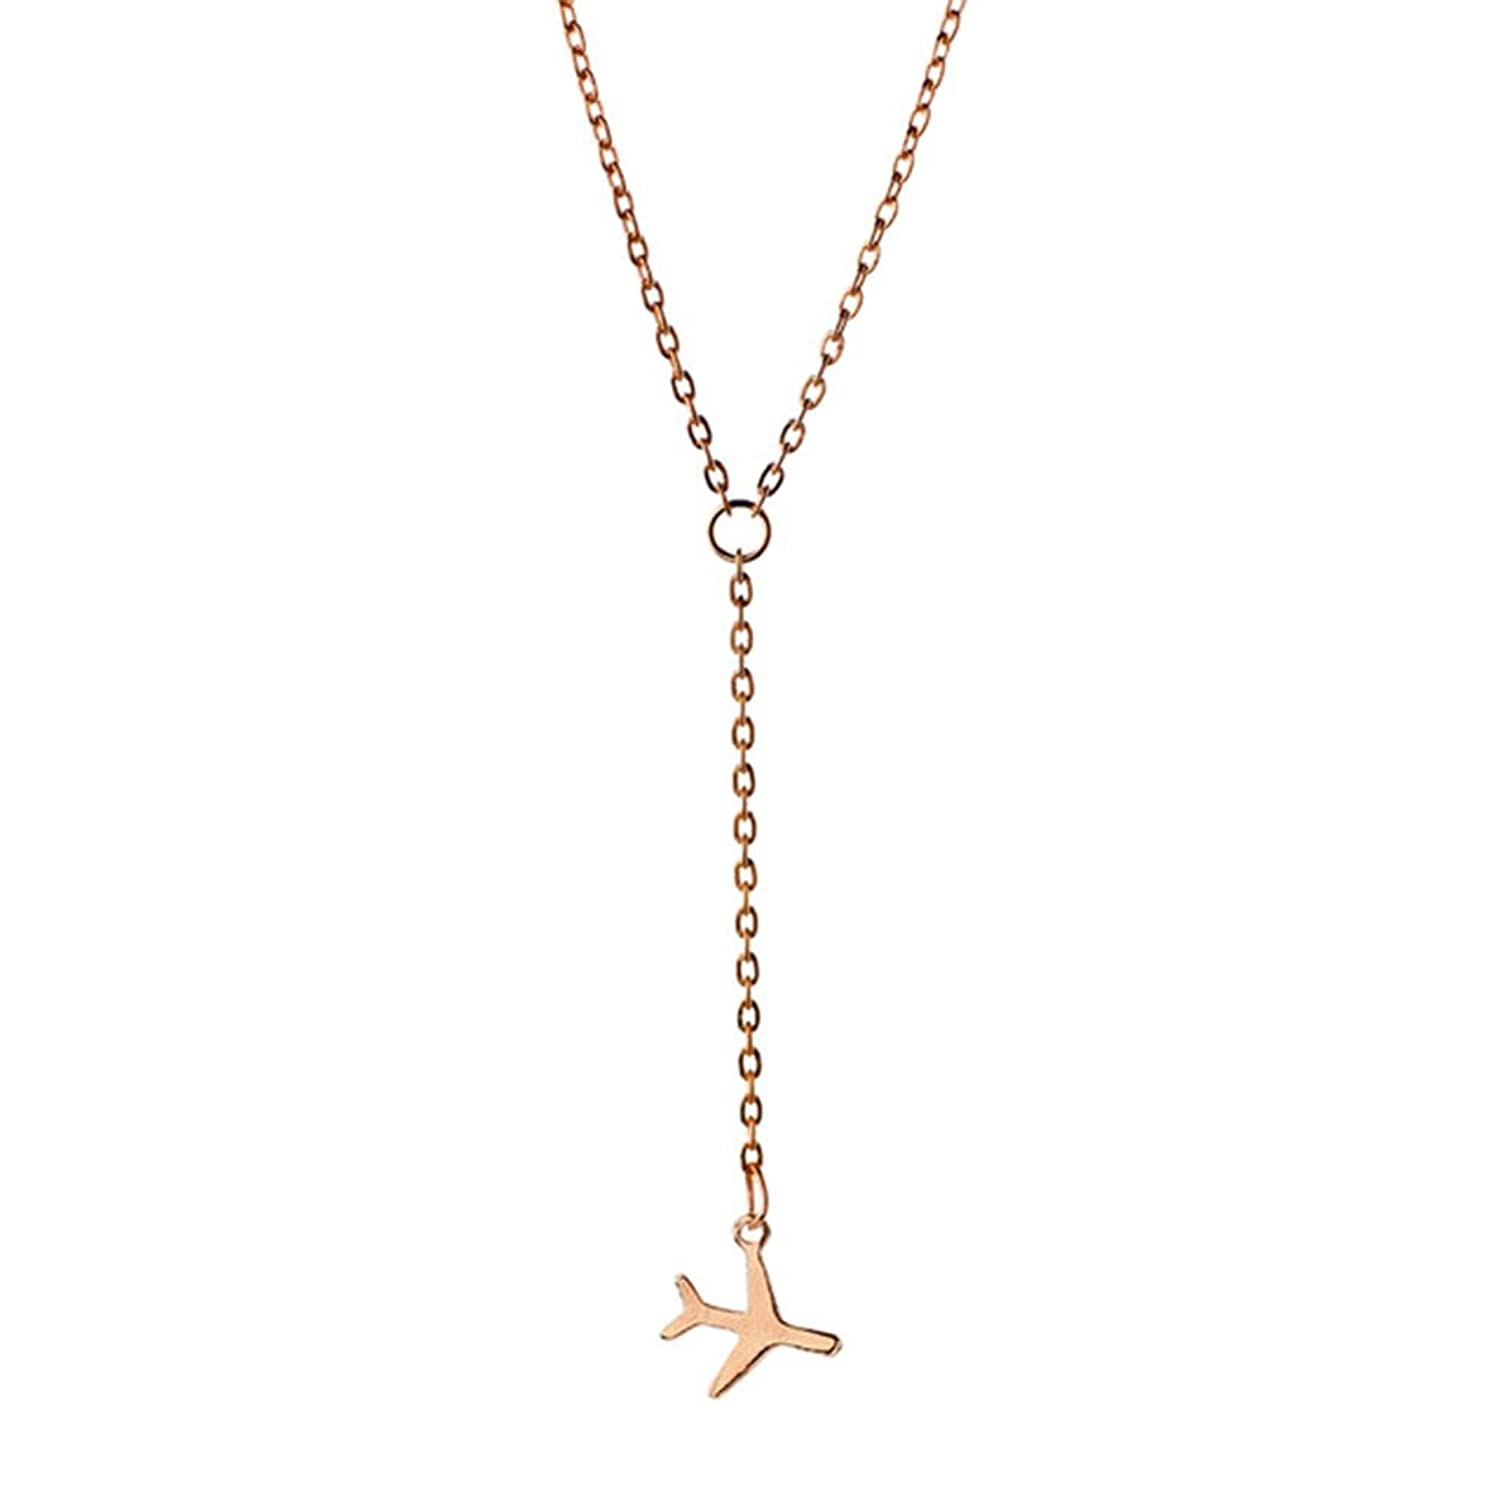 BEICHUANG Four Color Copper Tiny Airplane Cute Aircraft Necklace Perfect Gift for Travers